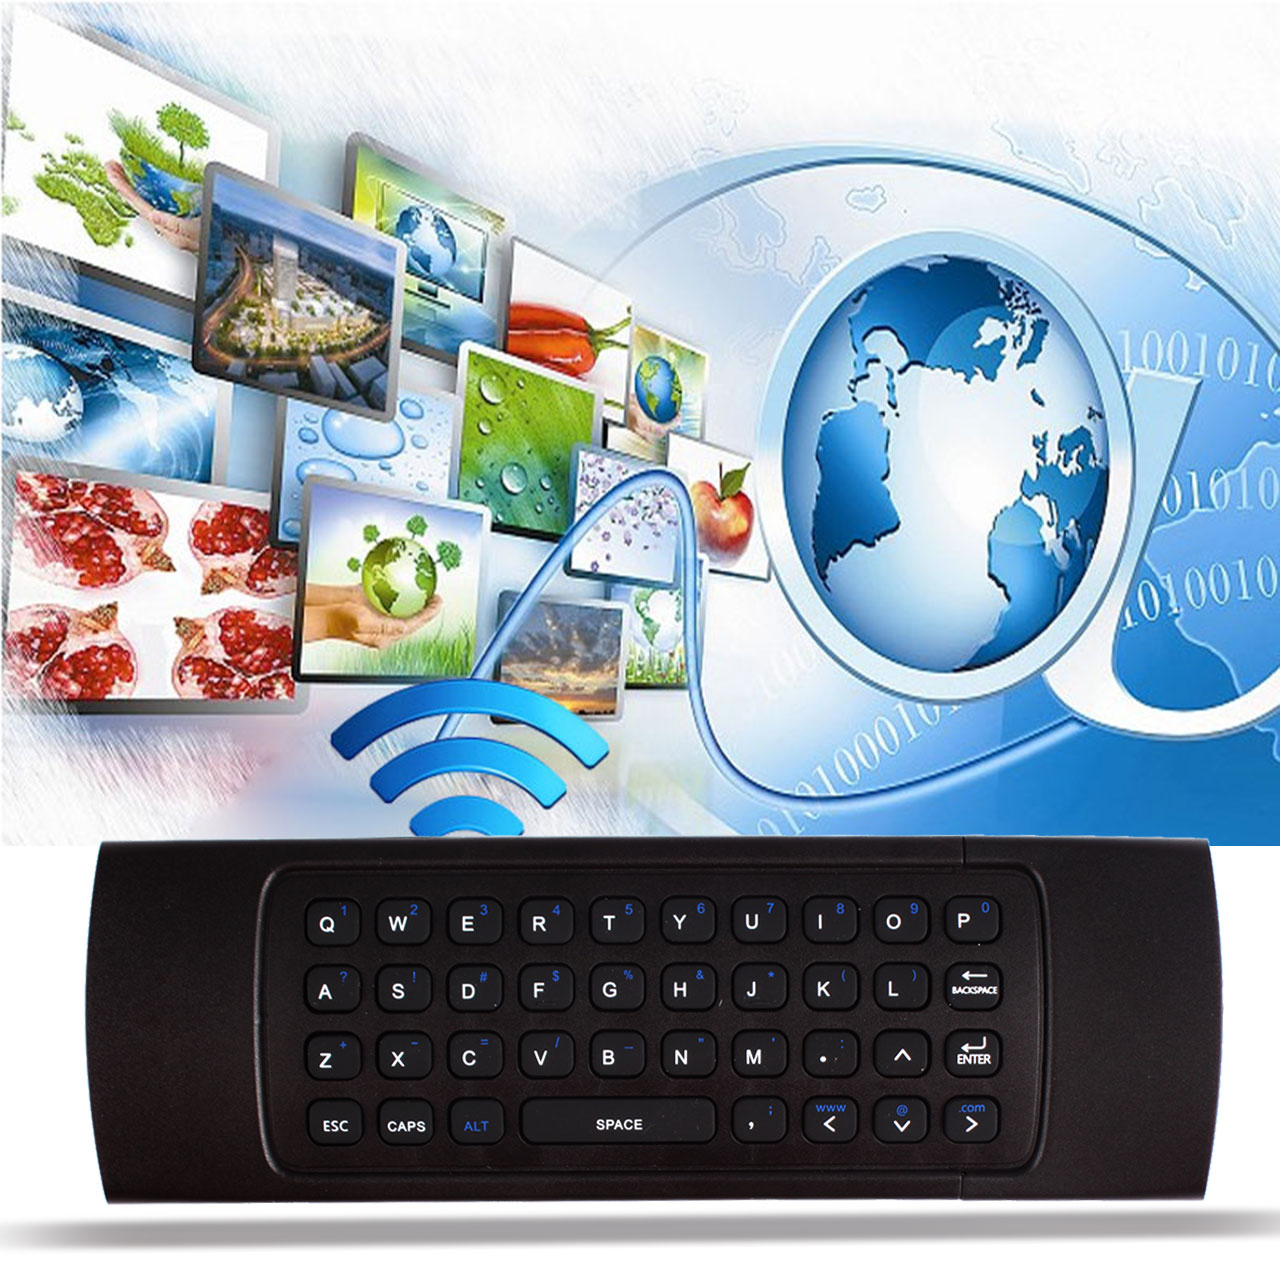 MX3 2.4GHz Air Mouse Wireless Keyboard Remote Voice Control For Smart TV BOX PC